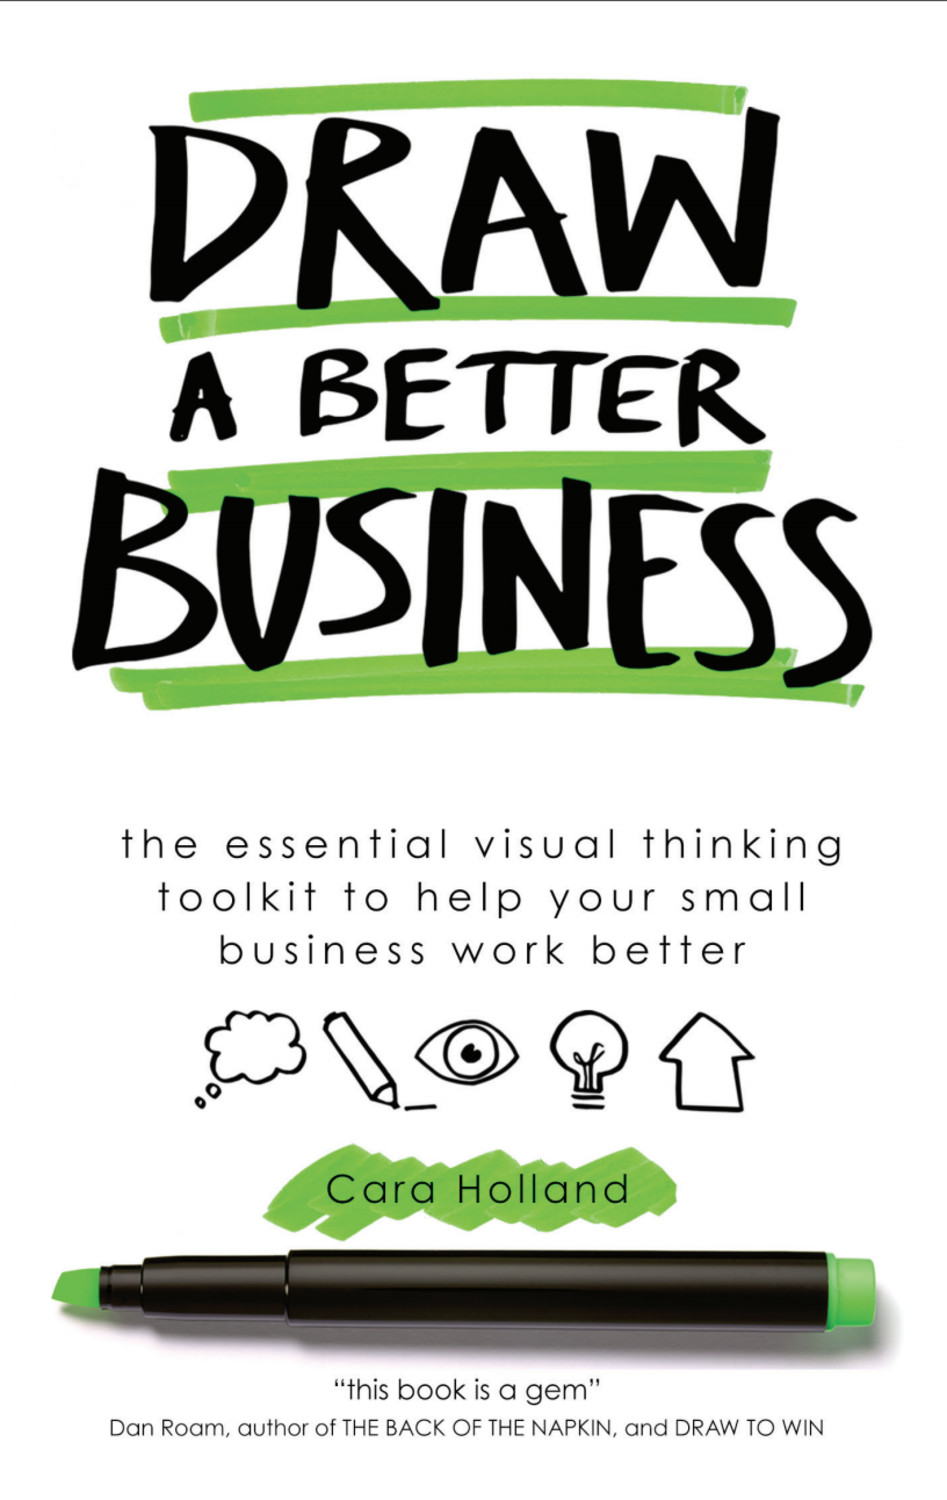 Book cover for Draw a Better Business:  The essential visual thinking toolkit to help your small business work better a book by Cara  Holland